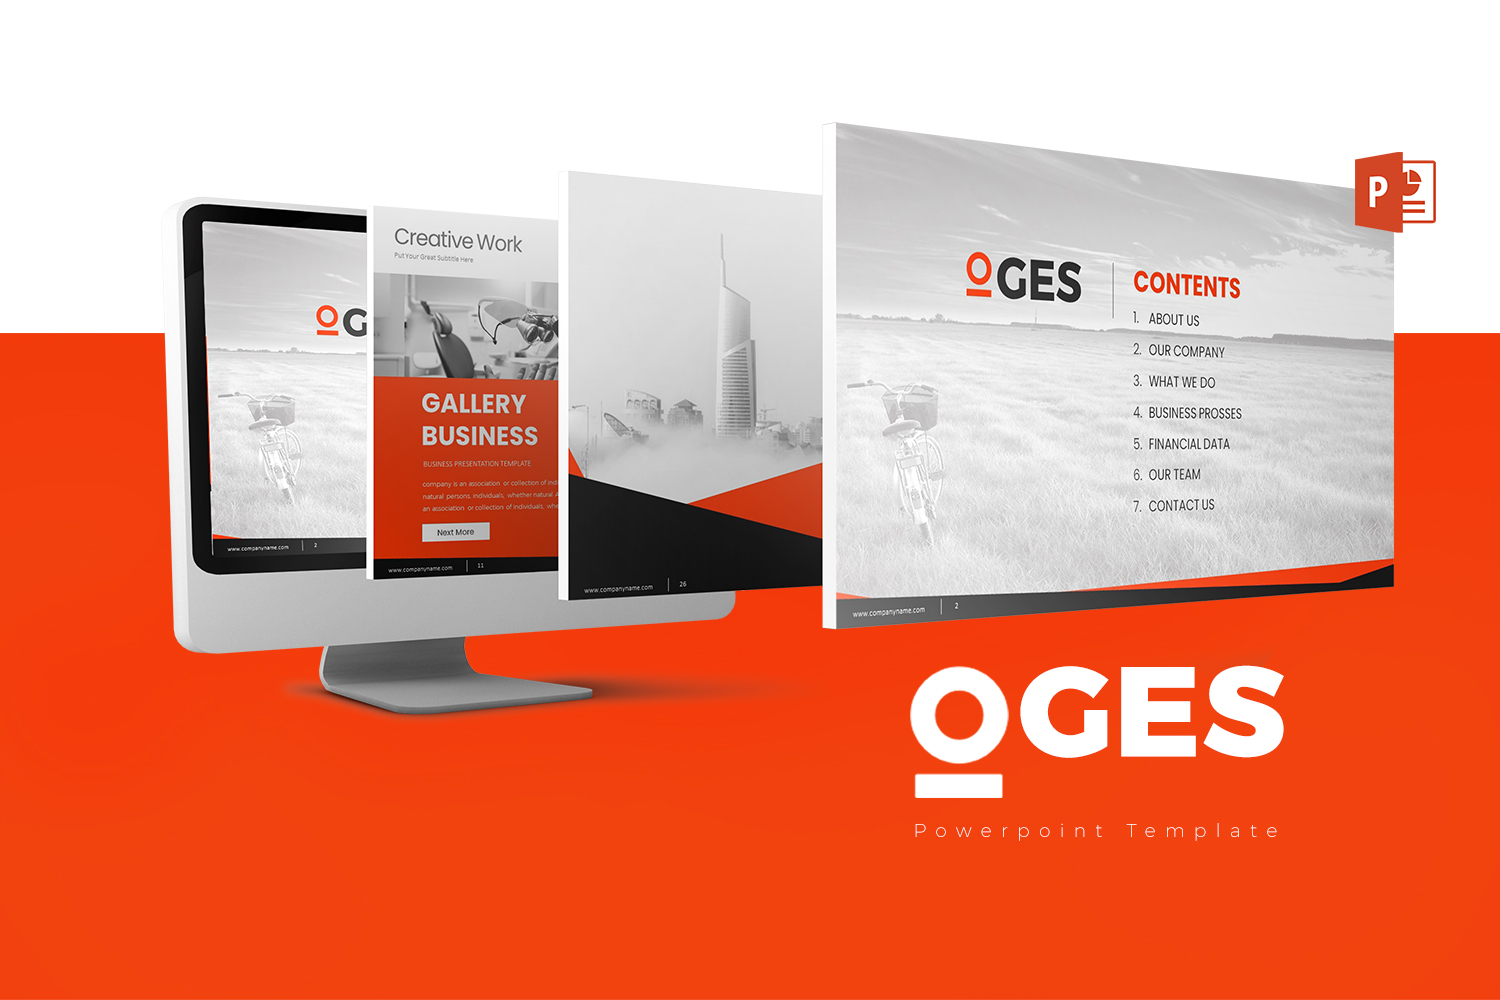 Oges Presentation PowerPoint Template